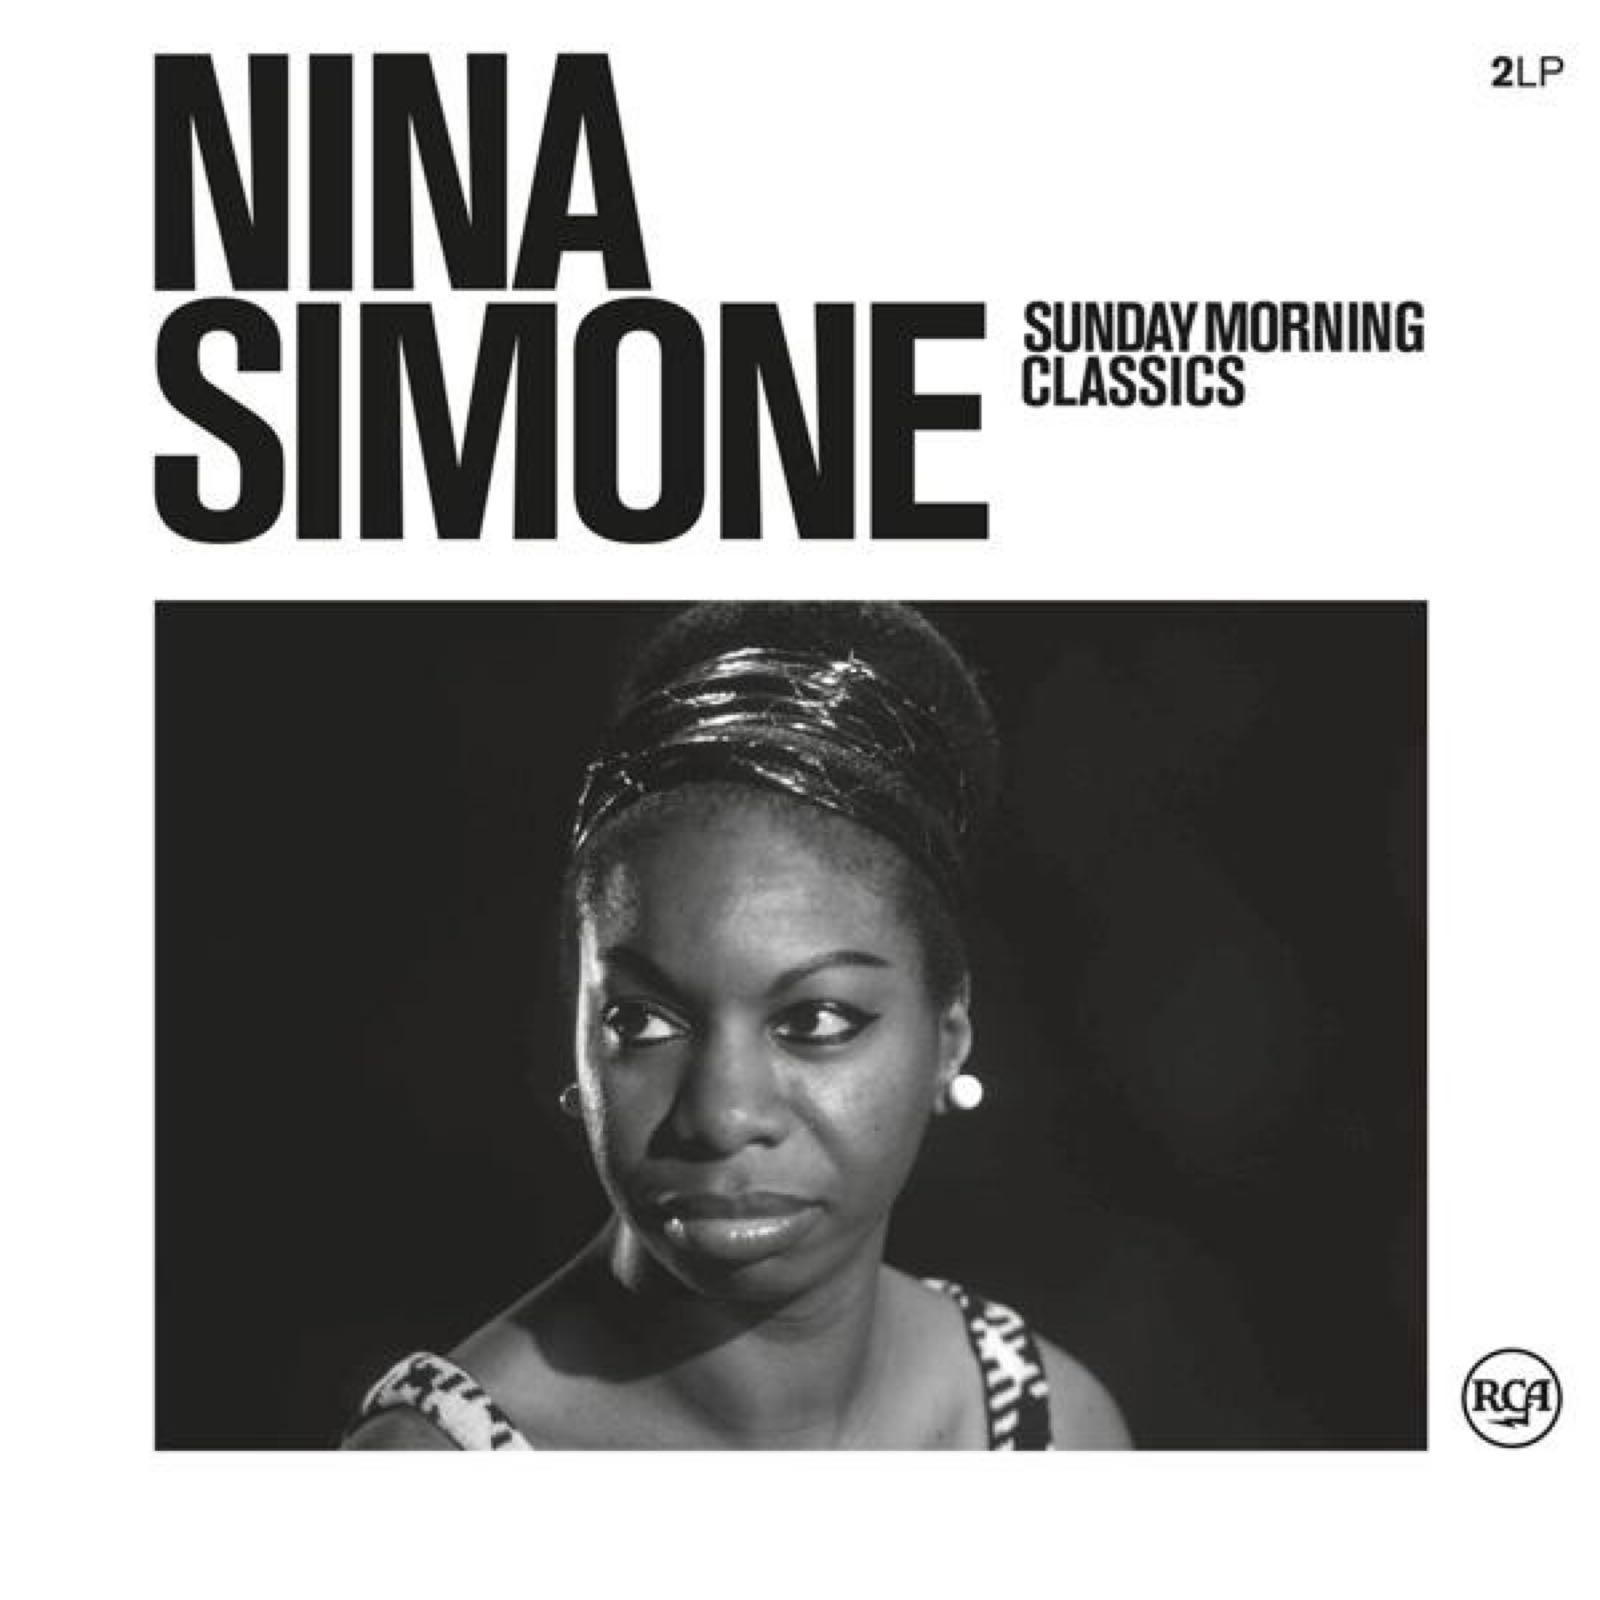 Nina Simone - Sunday Morning Classics [2xLP]